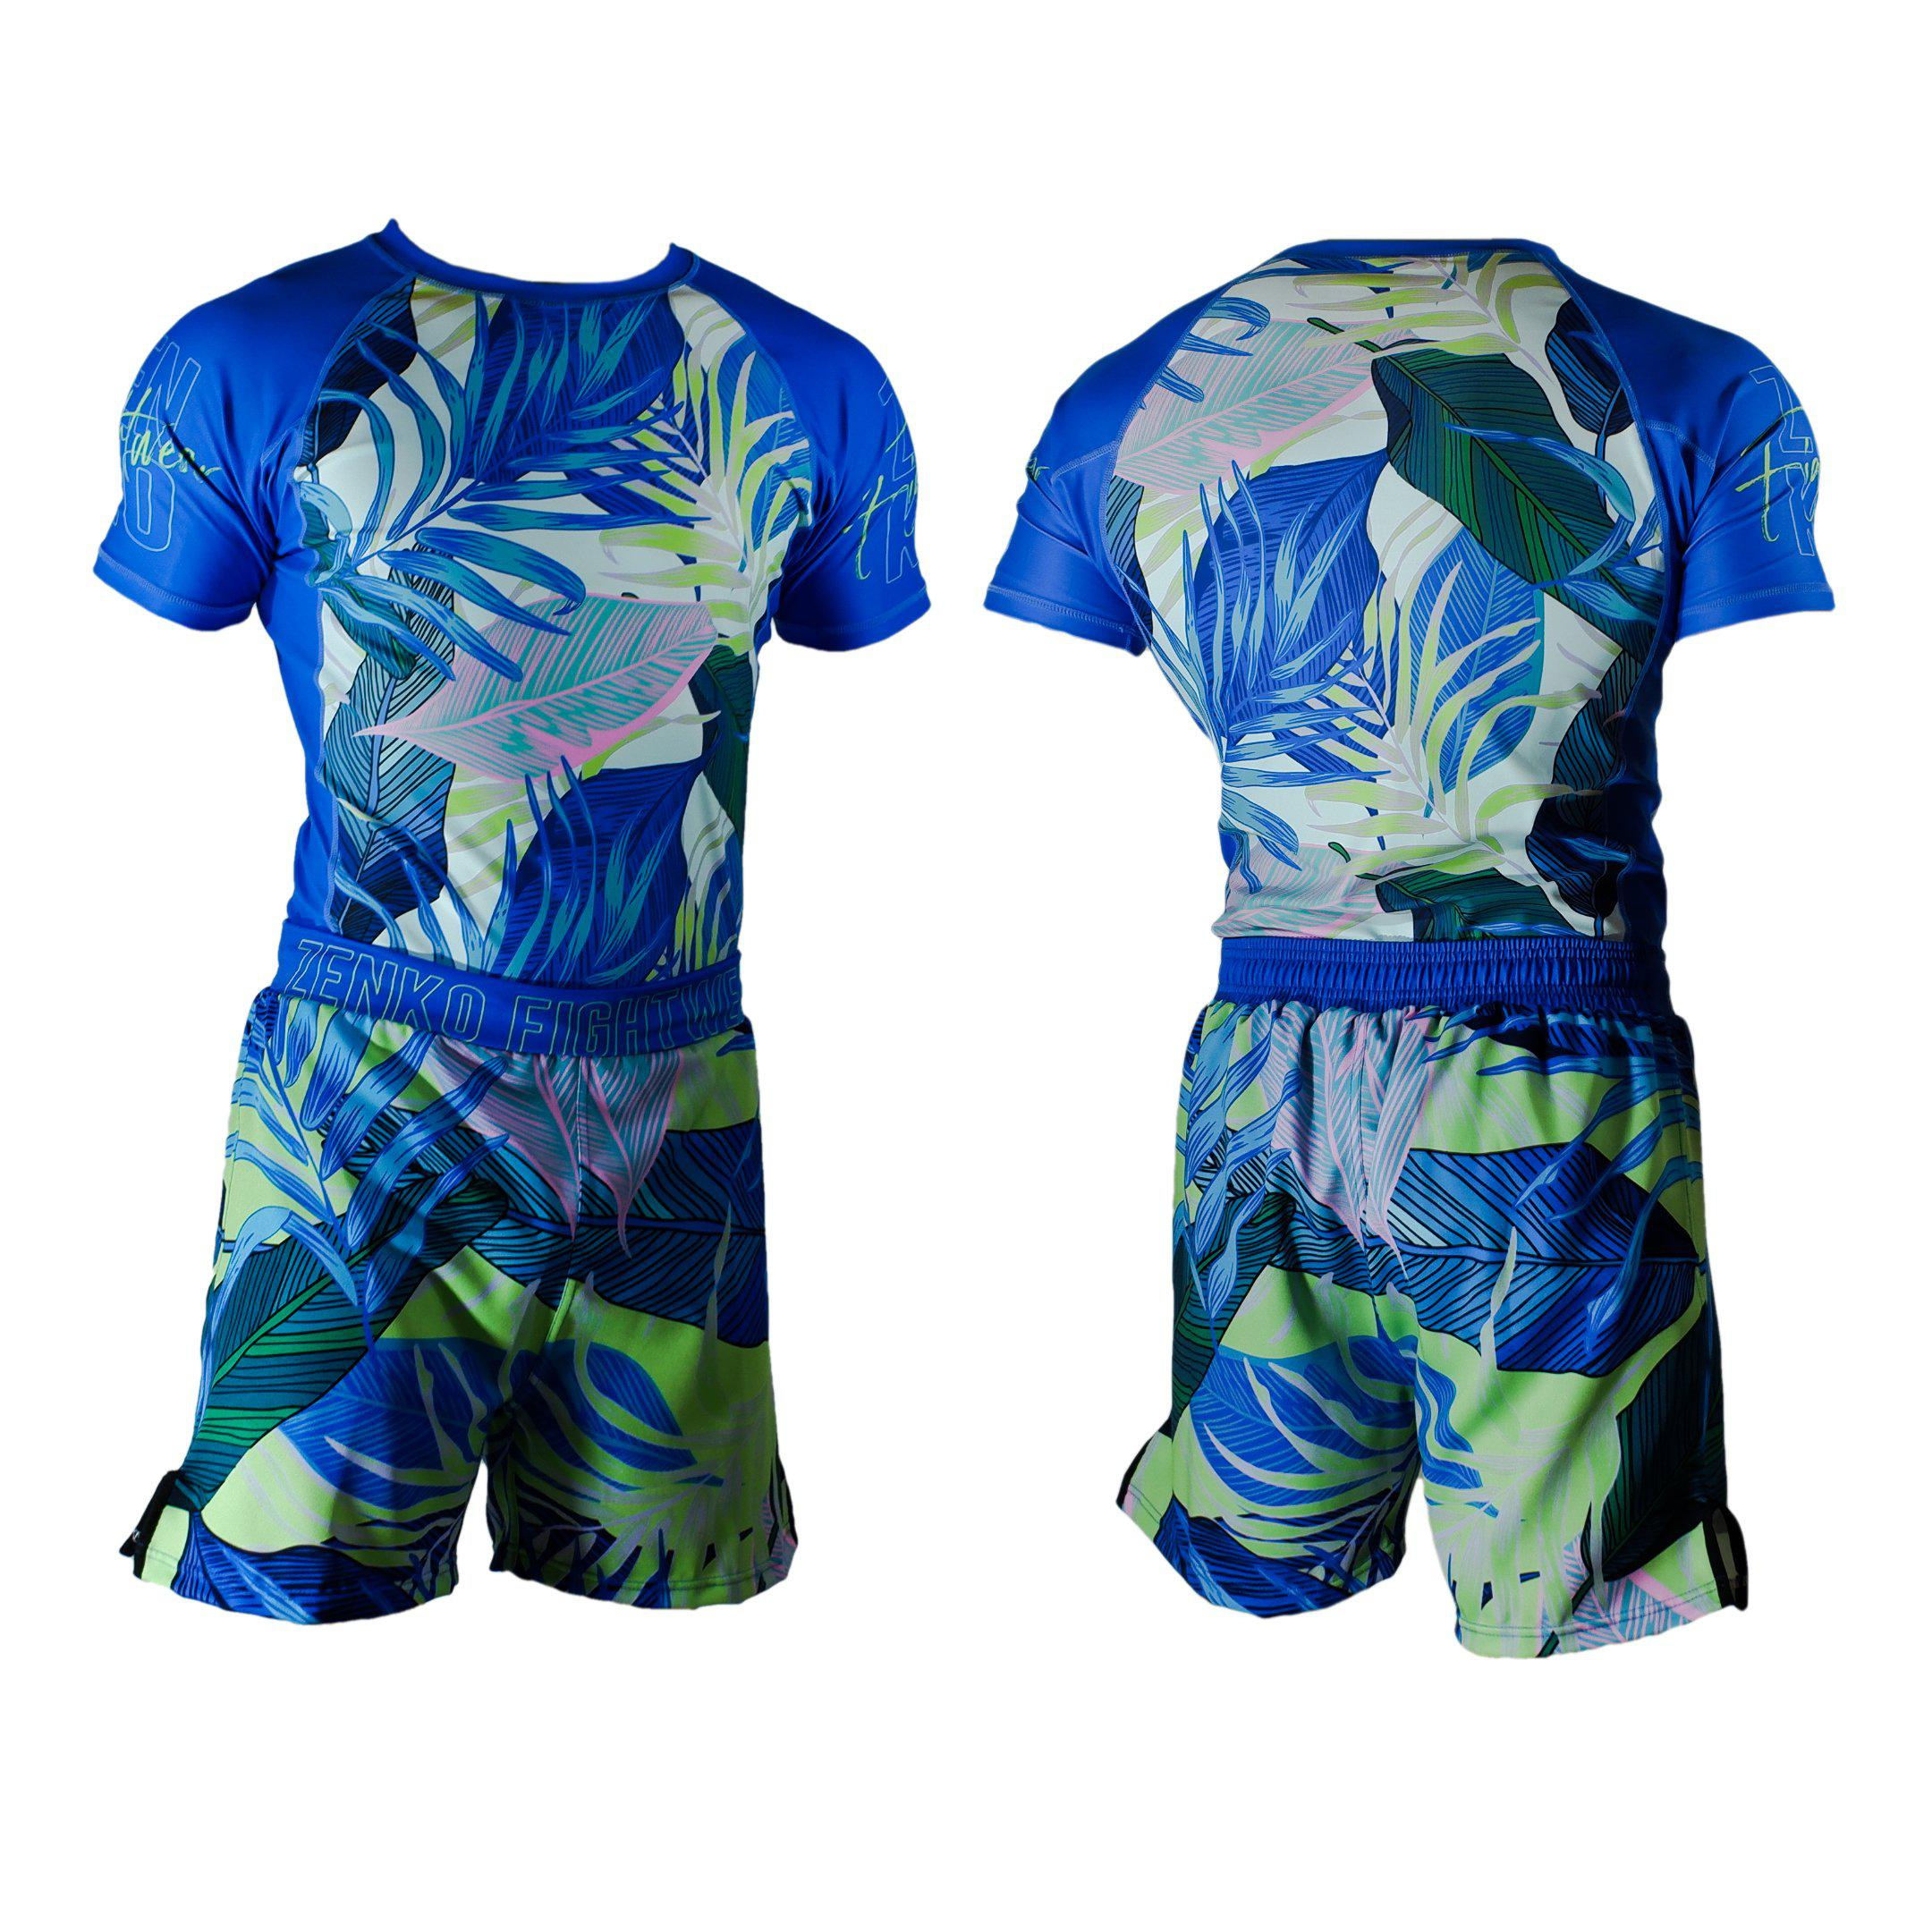 Zenko Fightwear Malibu Rashguard & Hybrid Fight Shorts